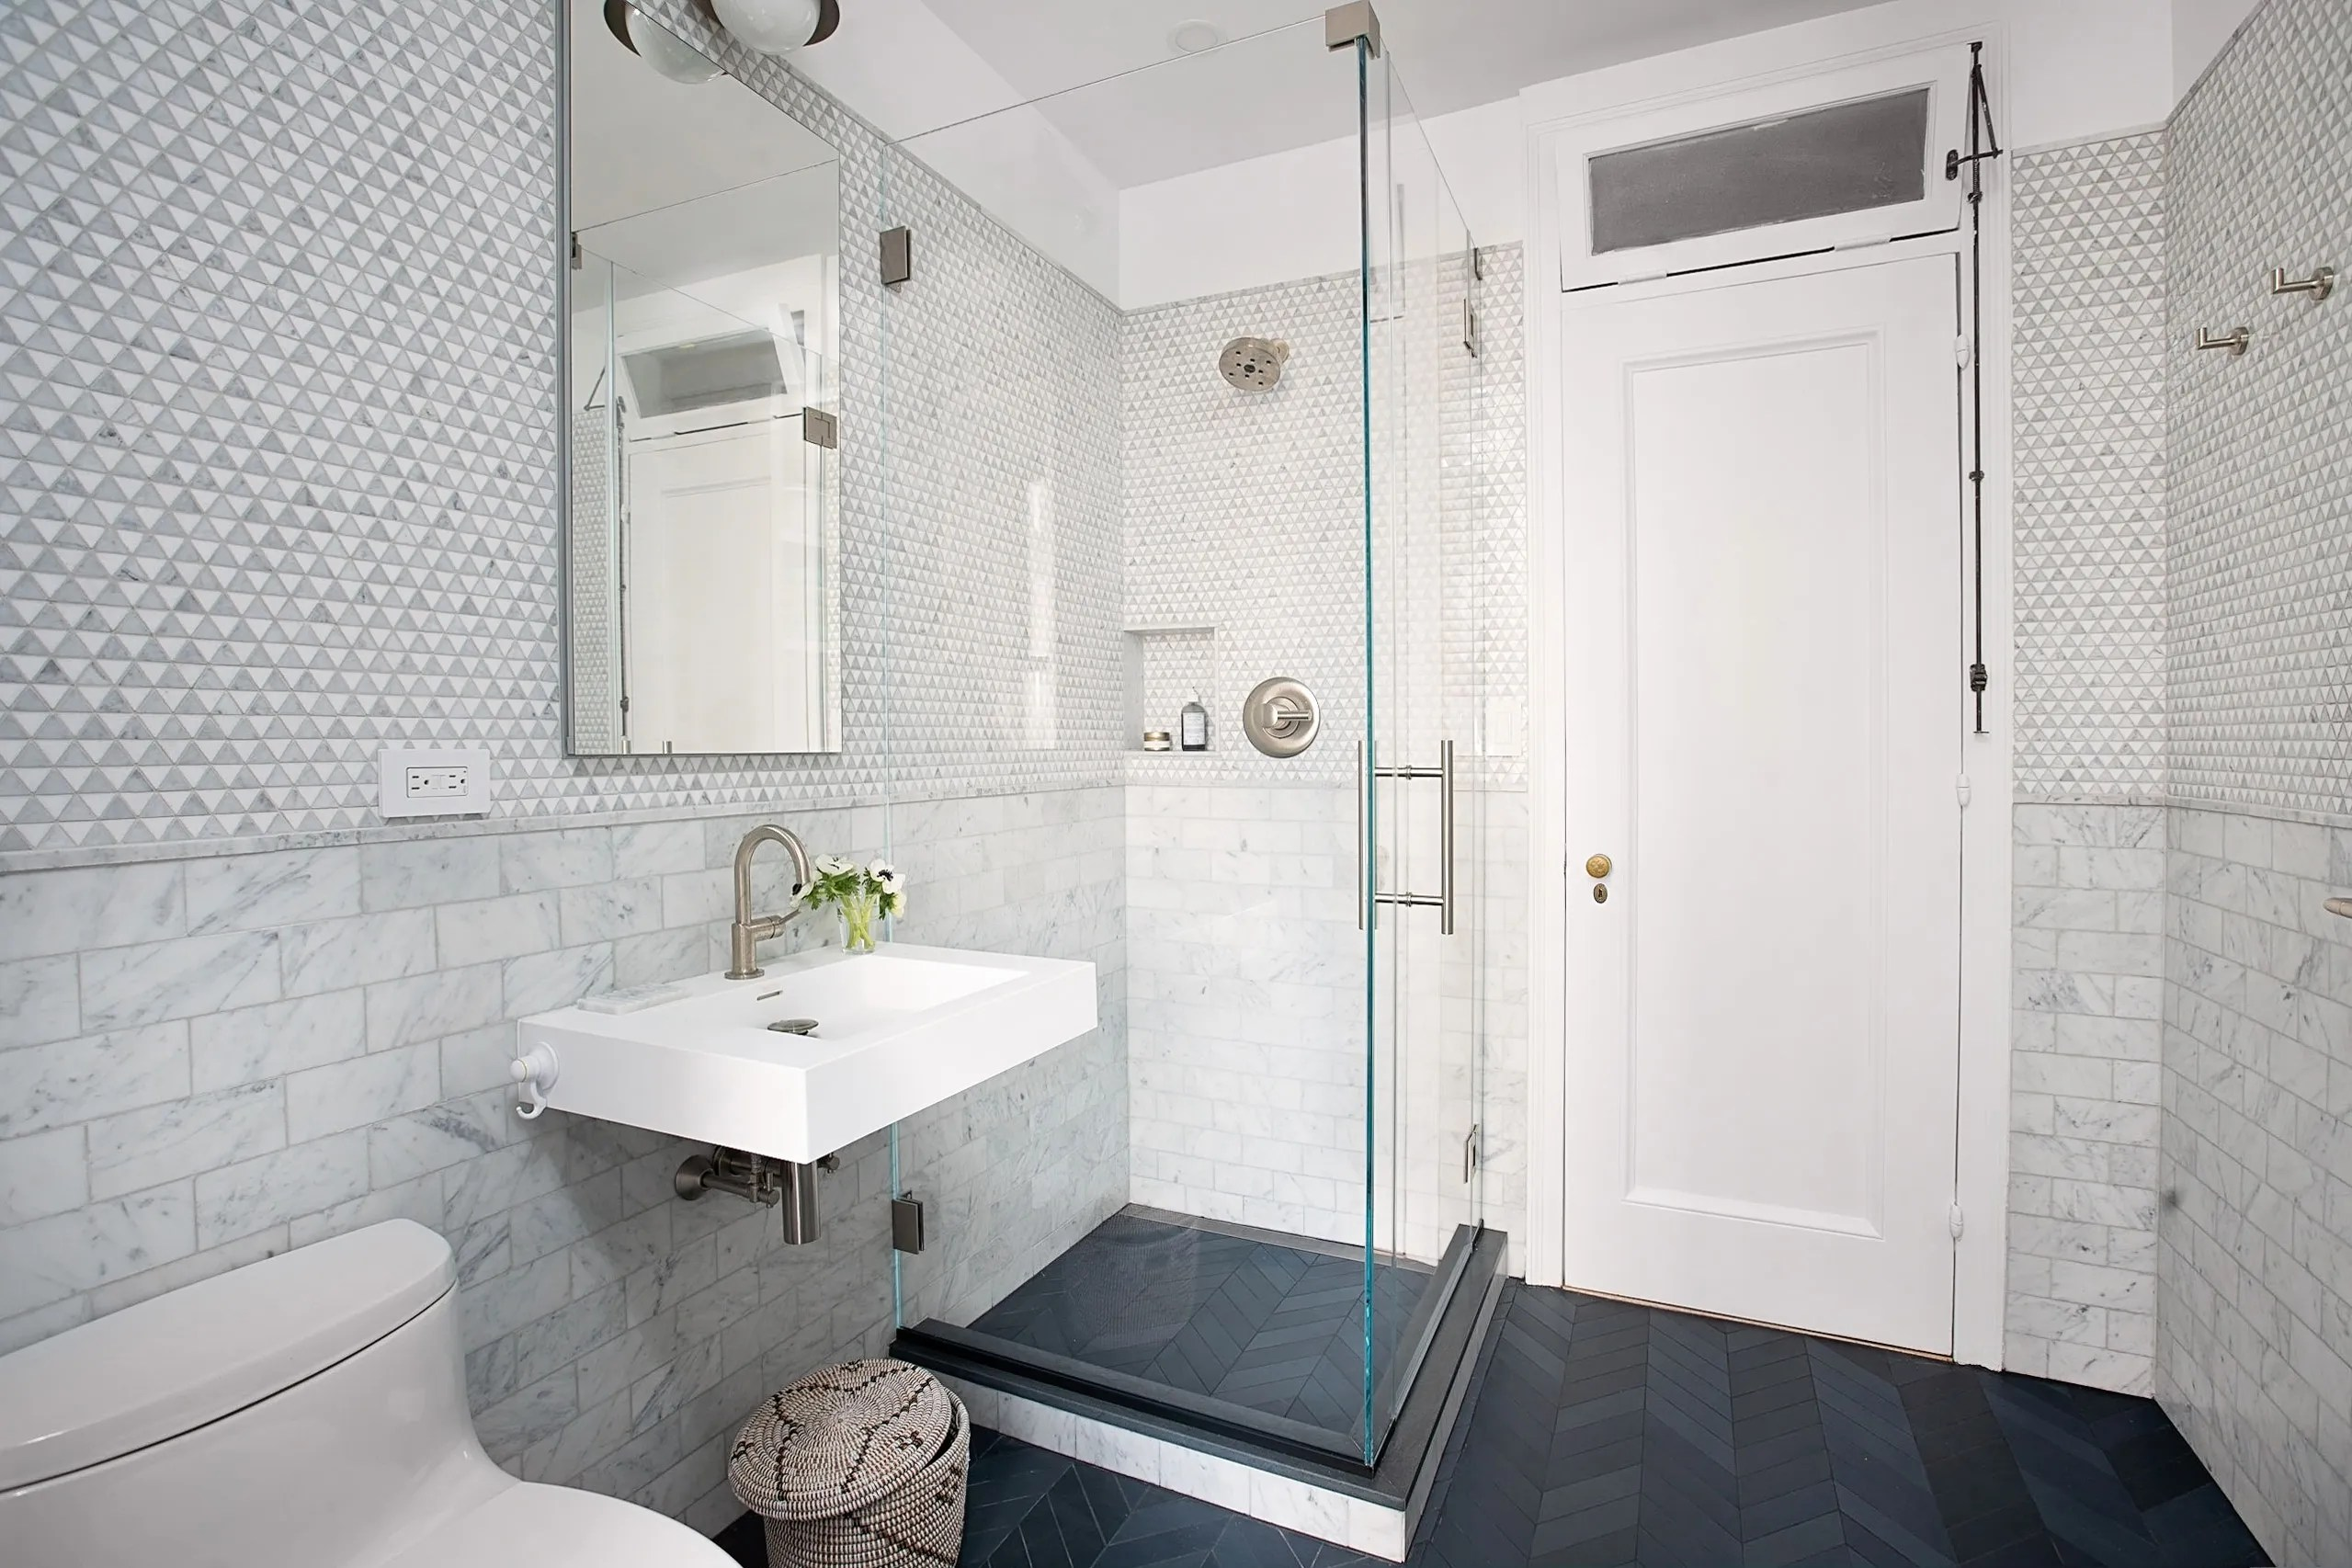 a bathroom remodel that added space and